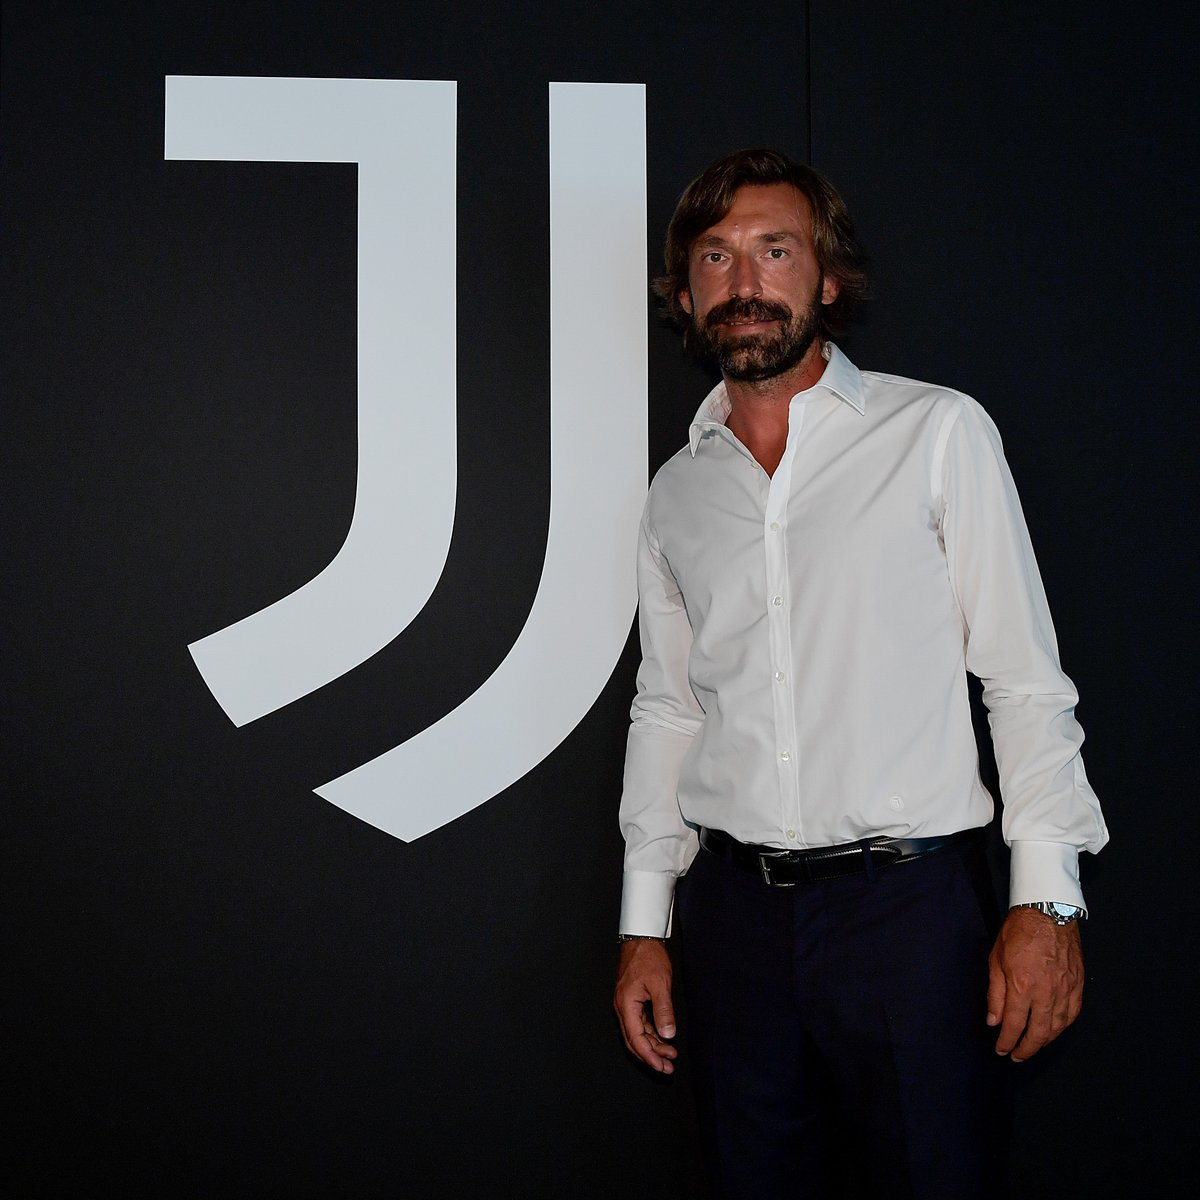 ⚪️⚫️ From maestro to coach! Italian legend Andrea Pirlo starts new adventure with Juventus as Under-23s manager...  #UCL https://t.co/74wby4rRi6